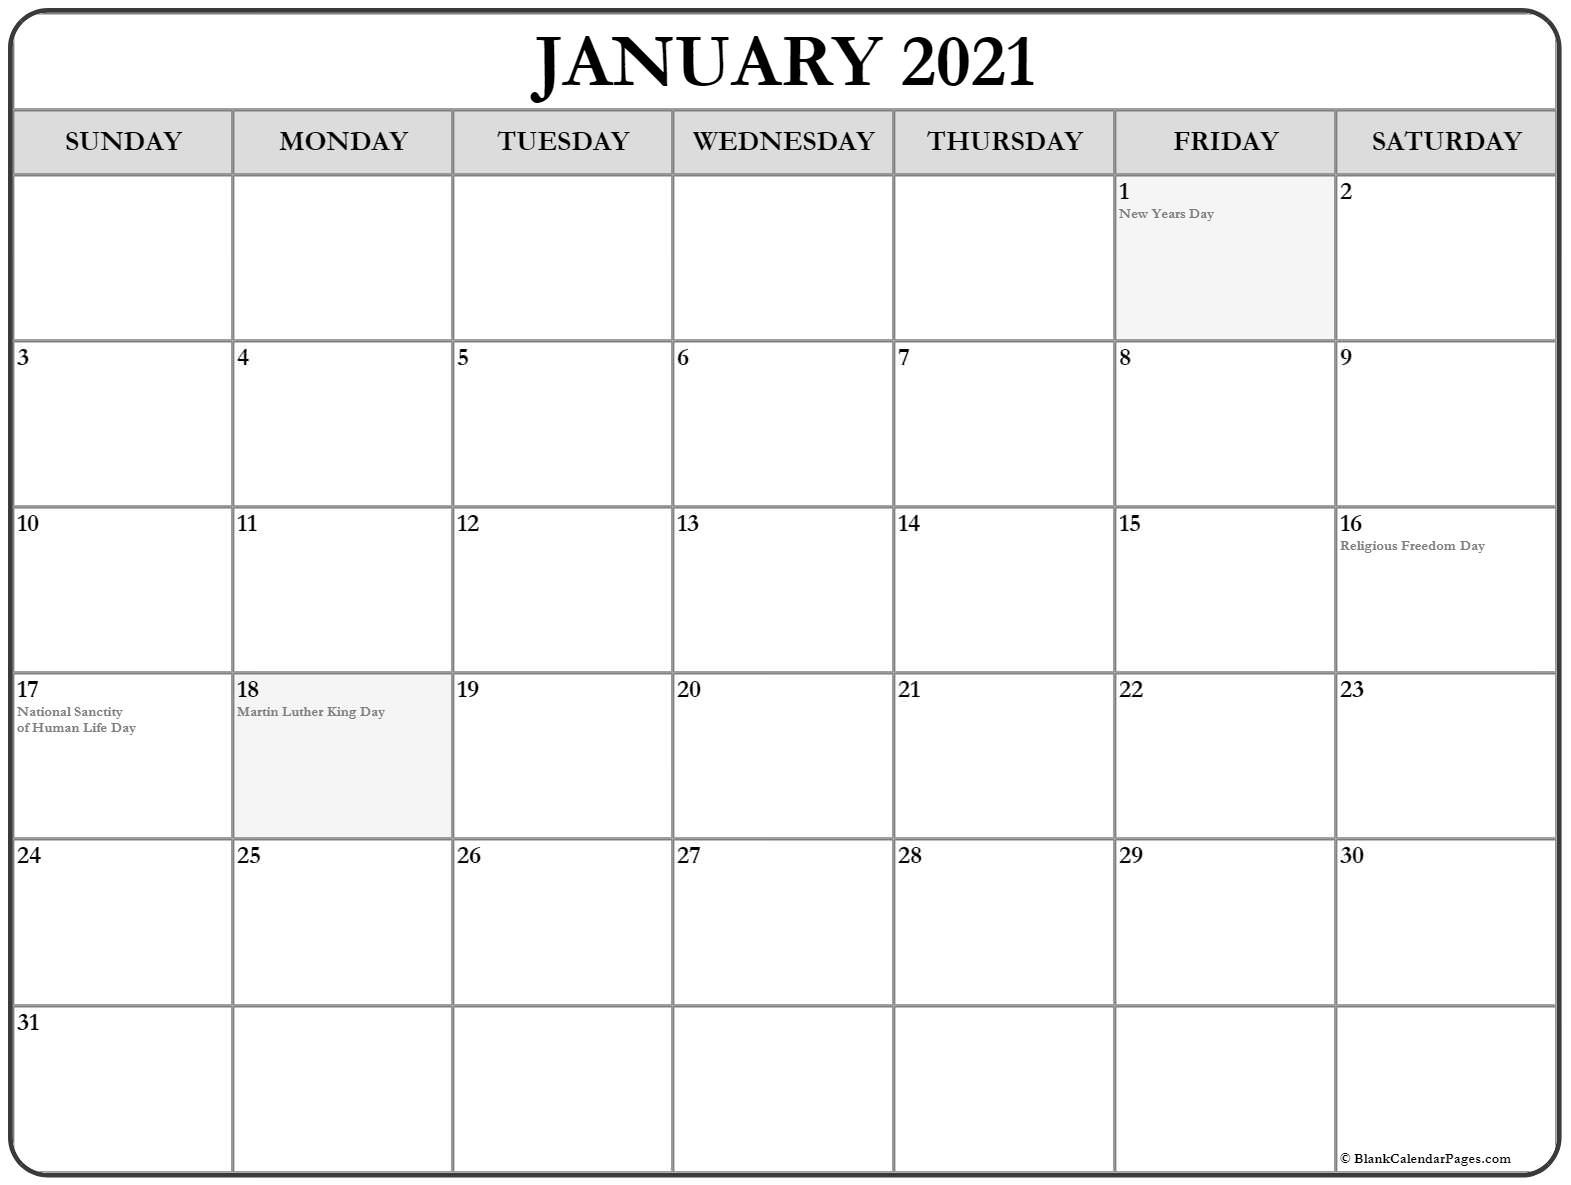 January 2021 Calendar | 56+ Templates Of 2021 Printable